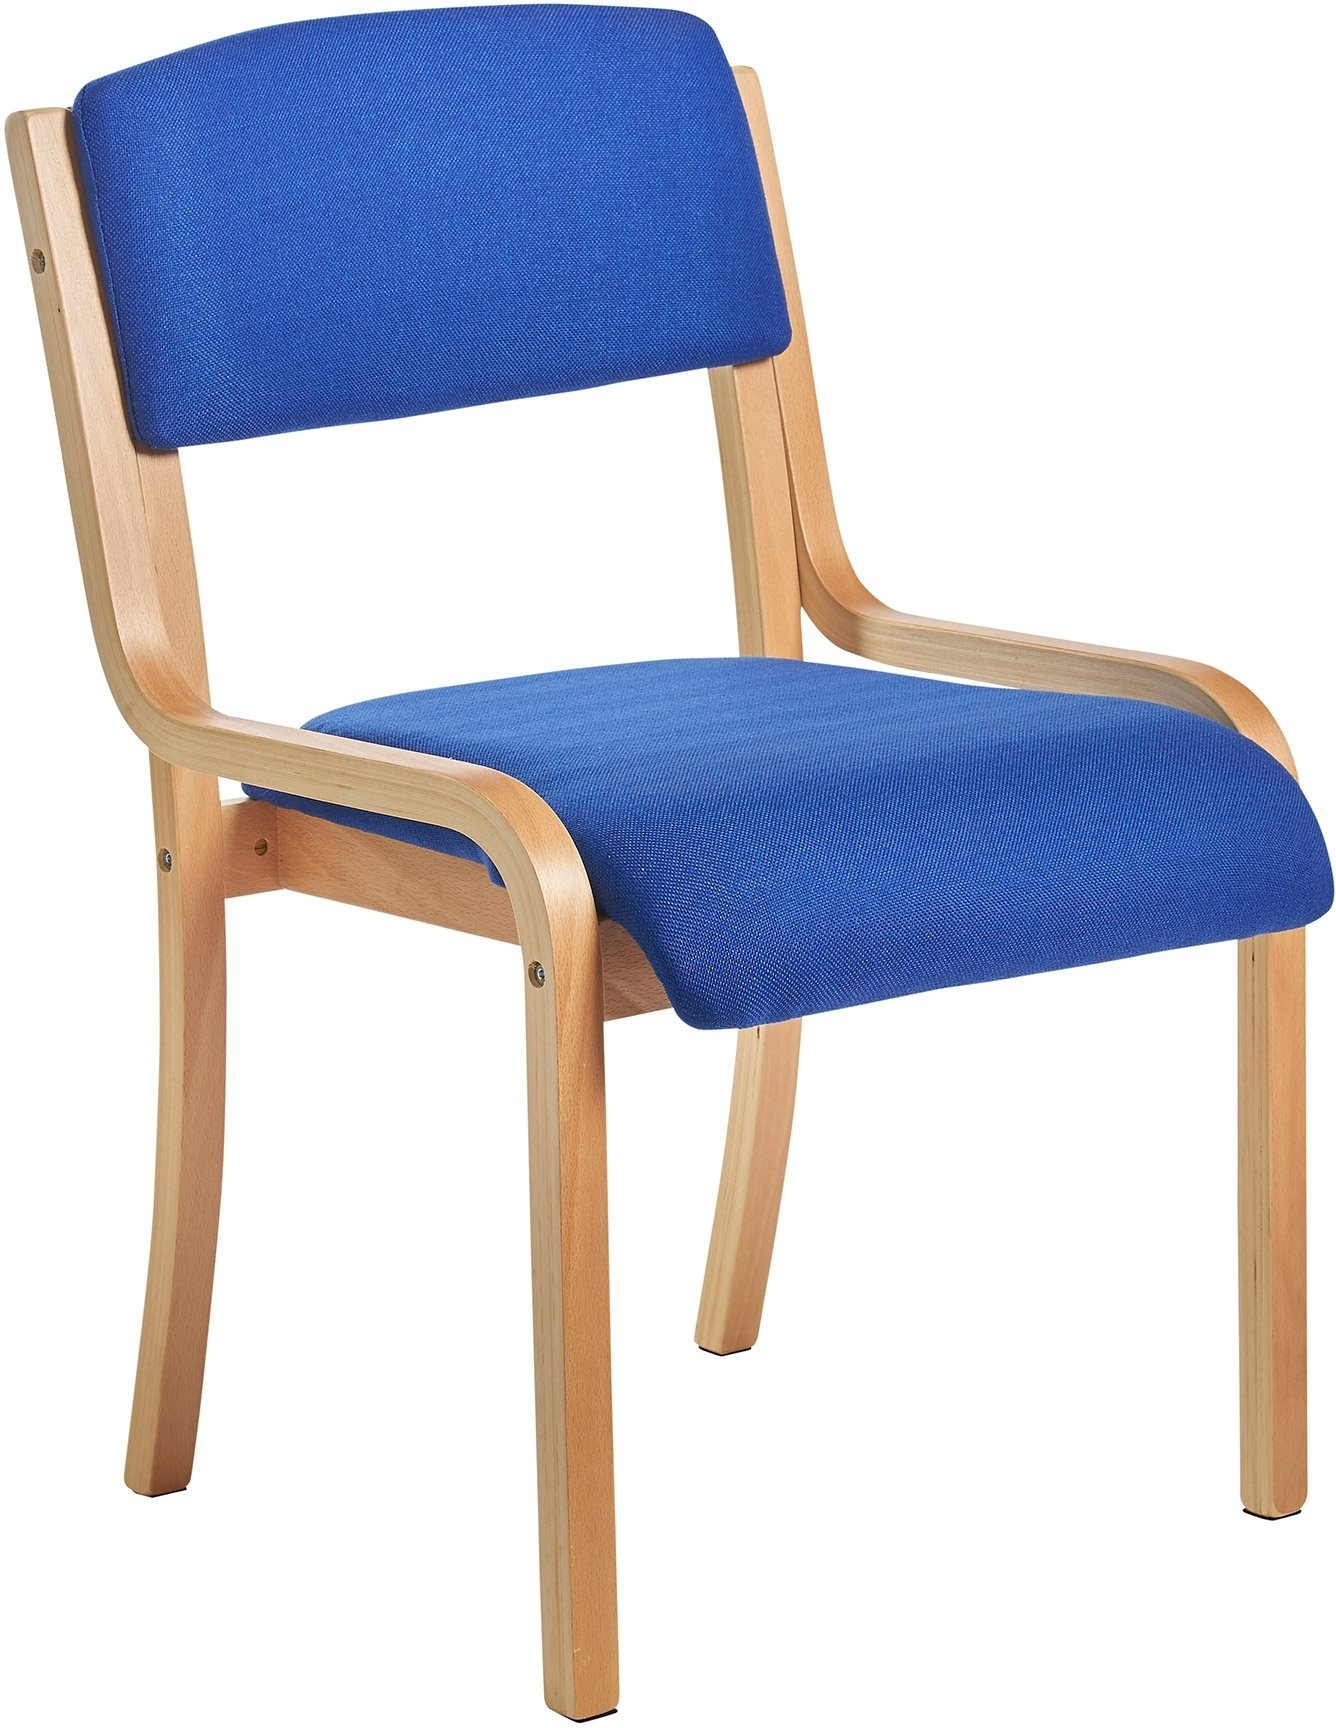 Bulk Chairs Gentoo Bulk Prague Wood Frame Conference Chair Without Arms